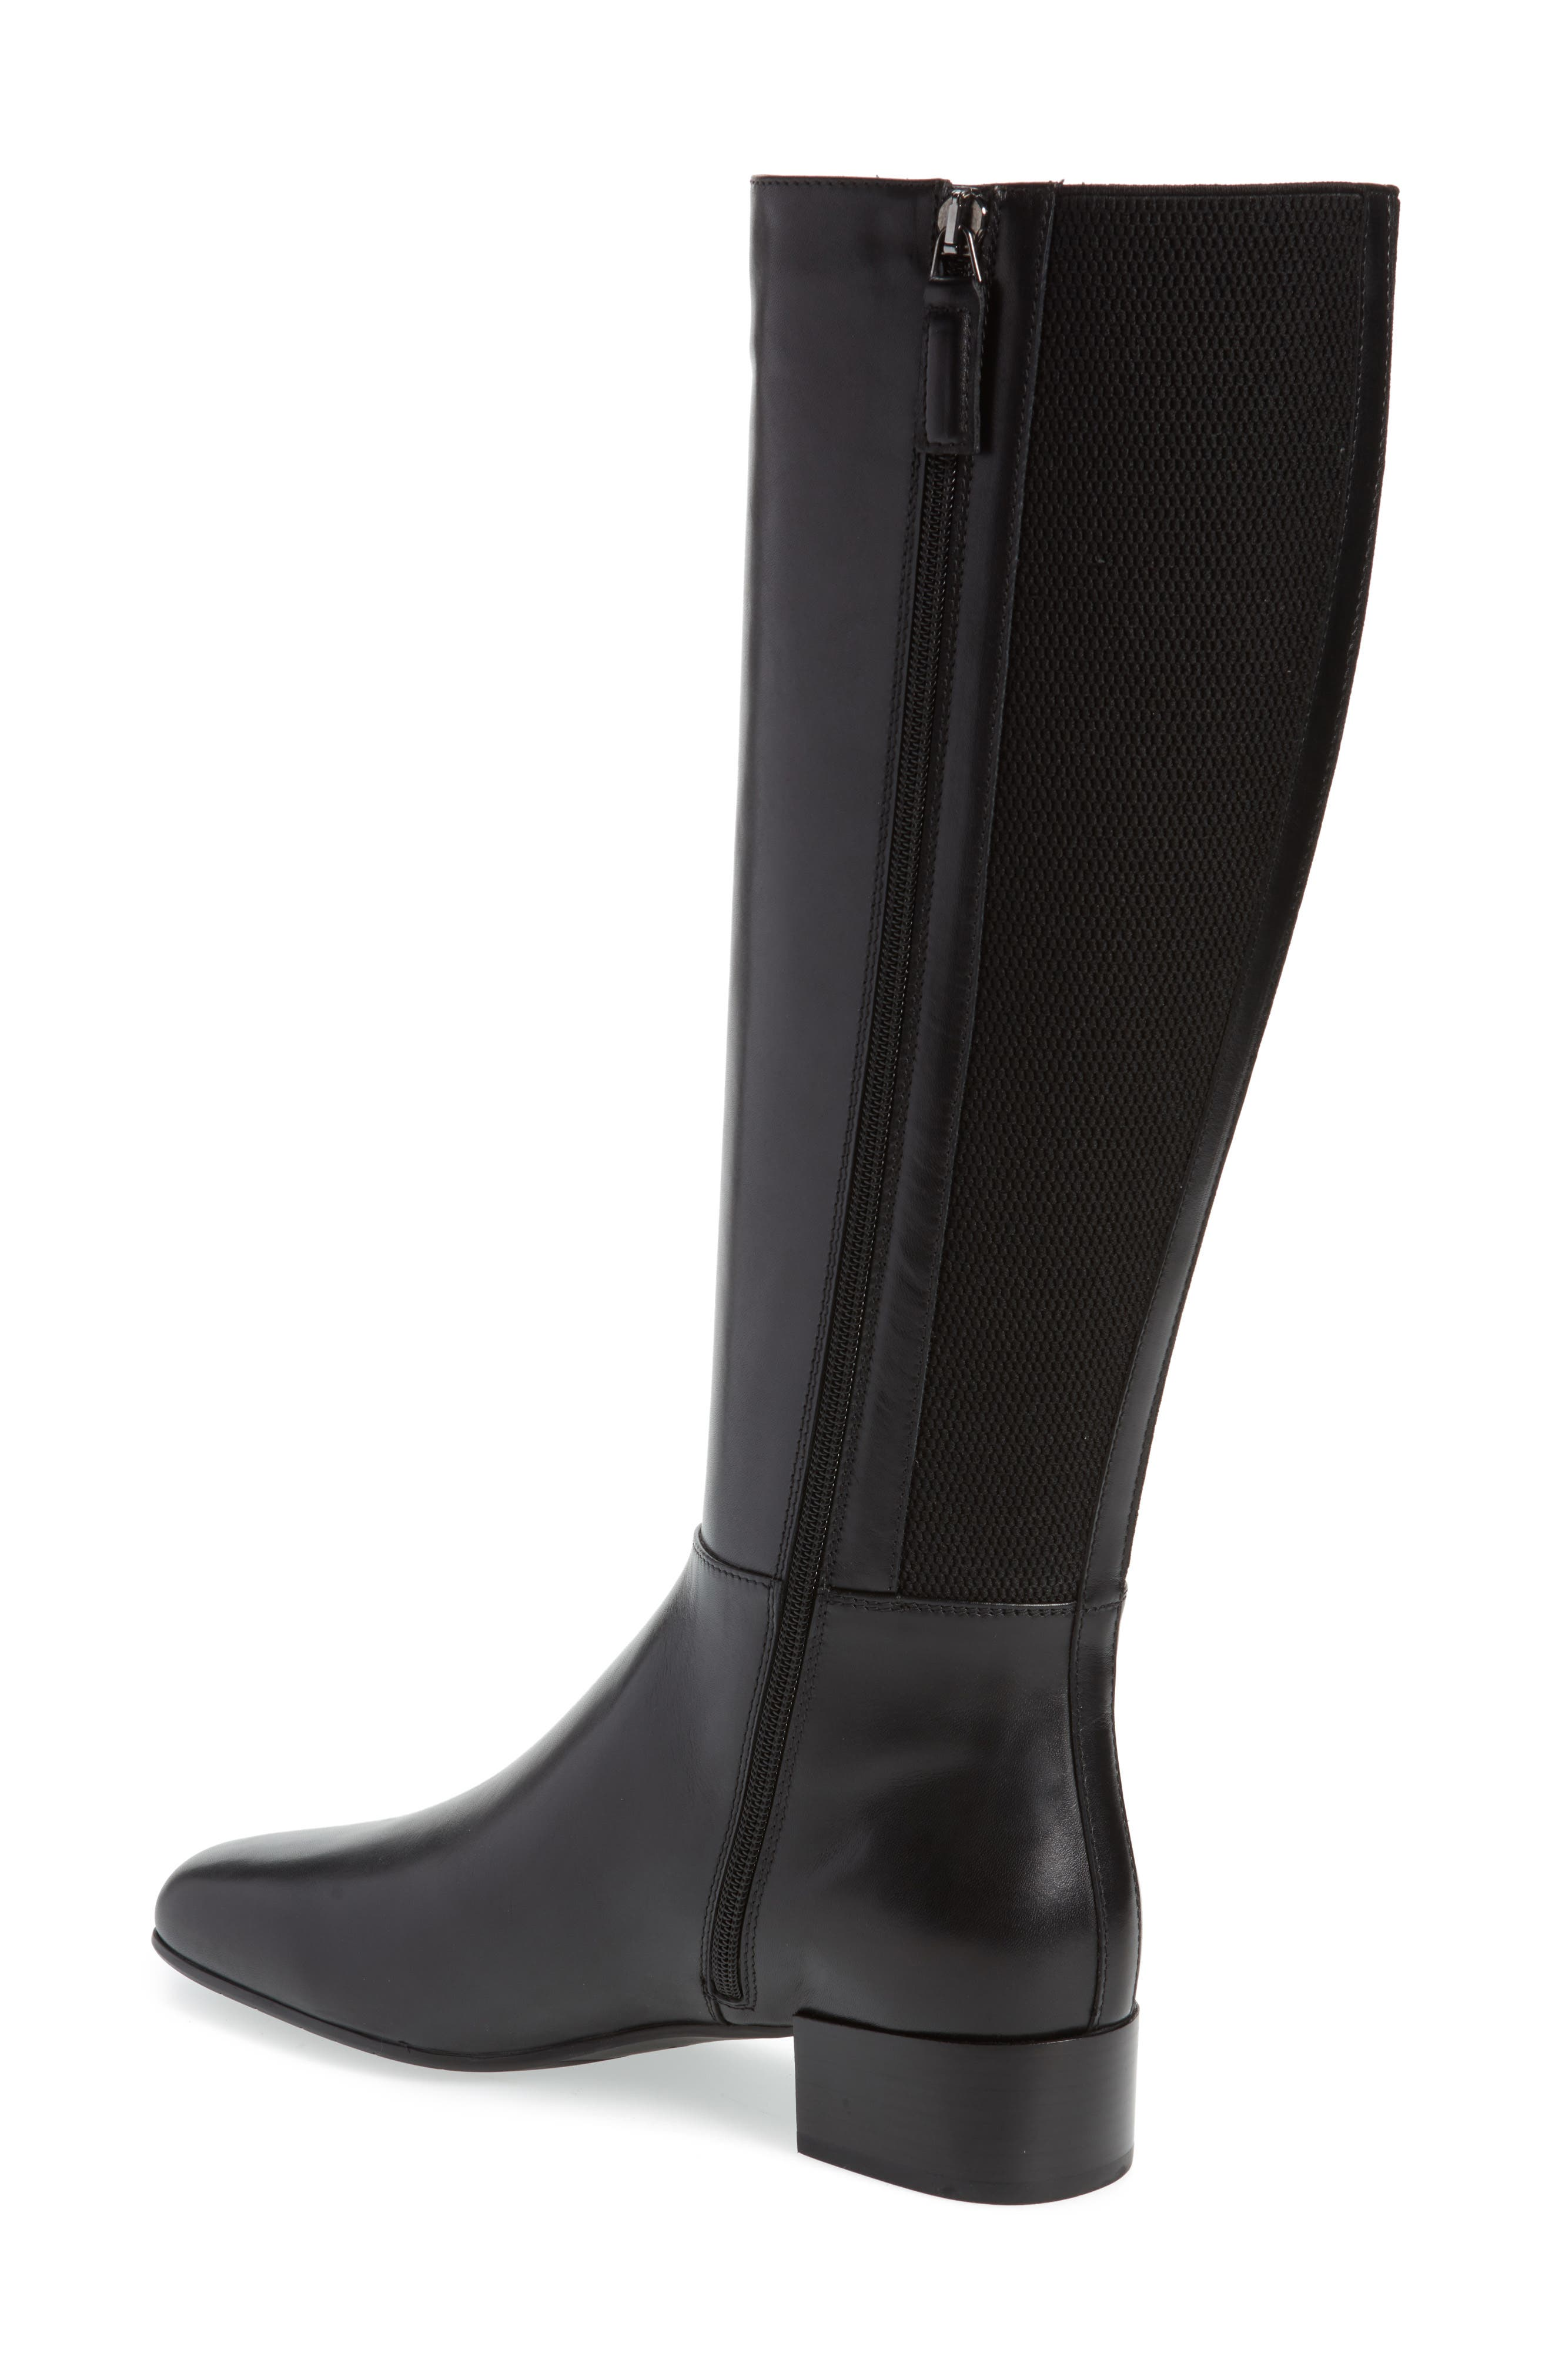 Letizia Weatherproof Boot,                             Alternate thumbnail 2, color,                             001